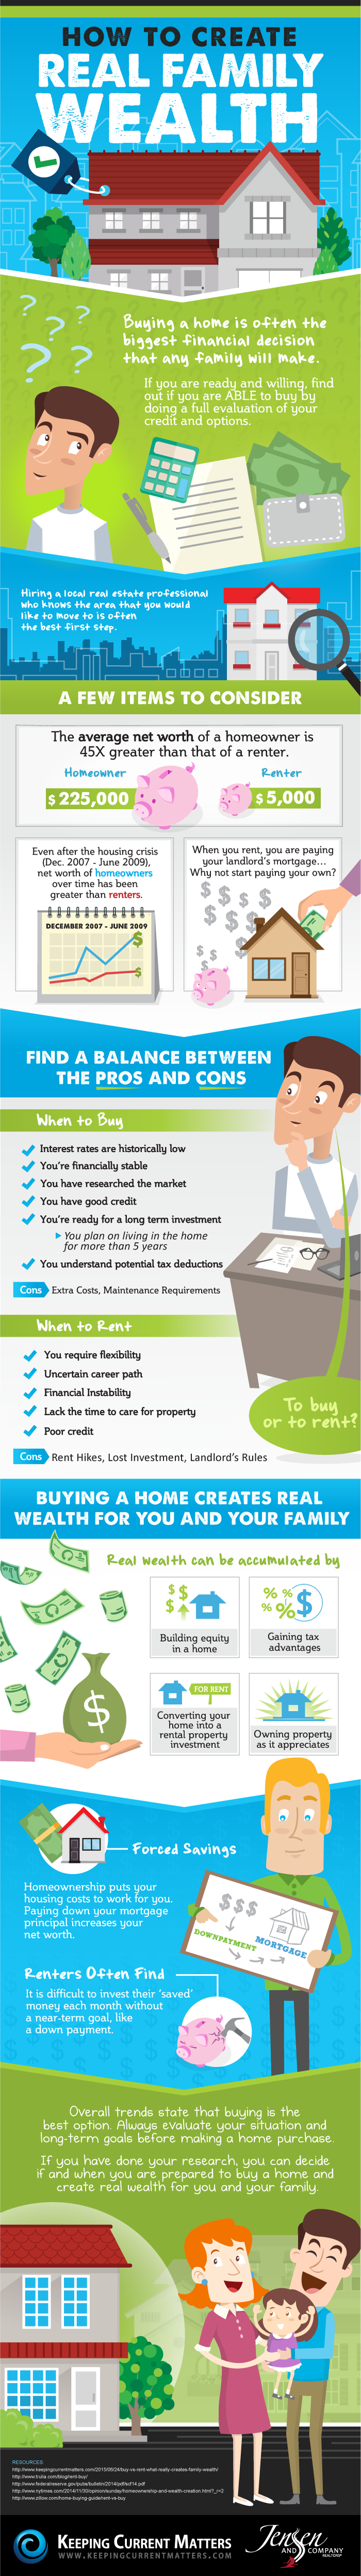 How-to-Create-Real-Family-Wealth-Infographic